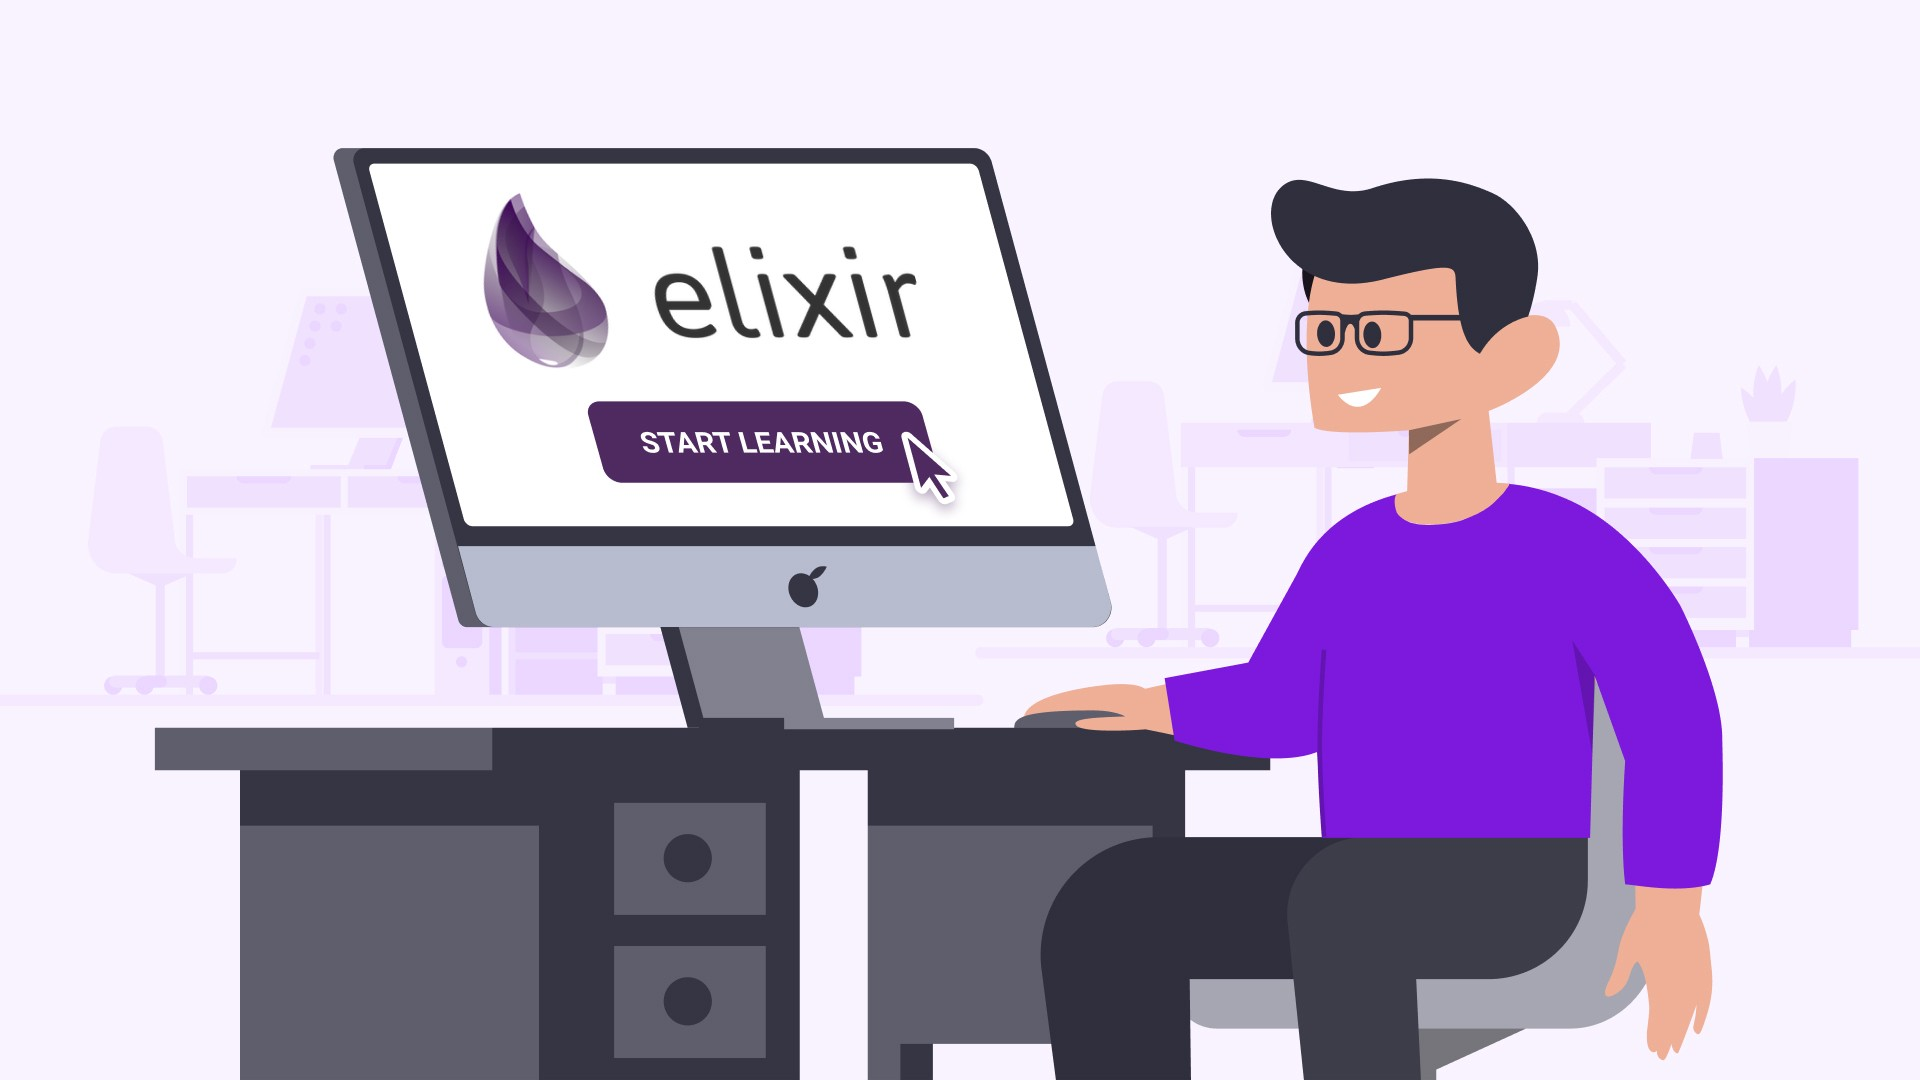 """Person sitting in front of a computer screen that says """"elixir—START LEARNING"""""""